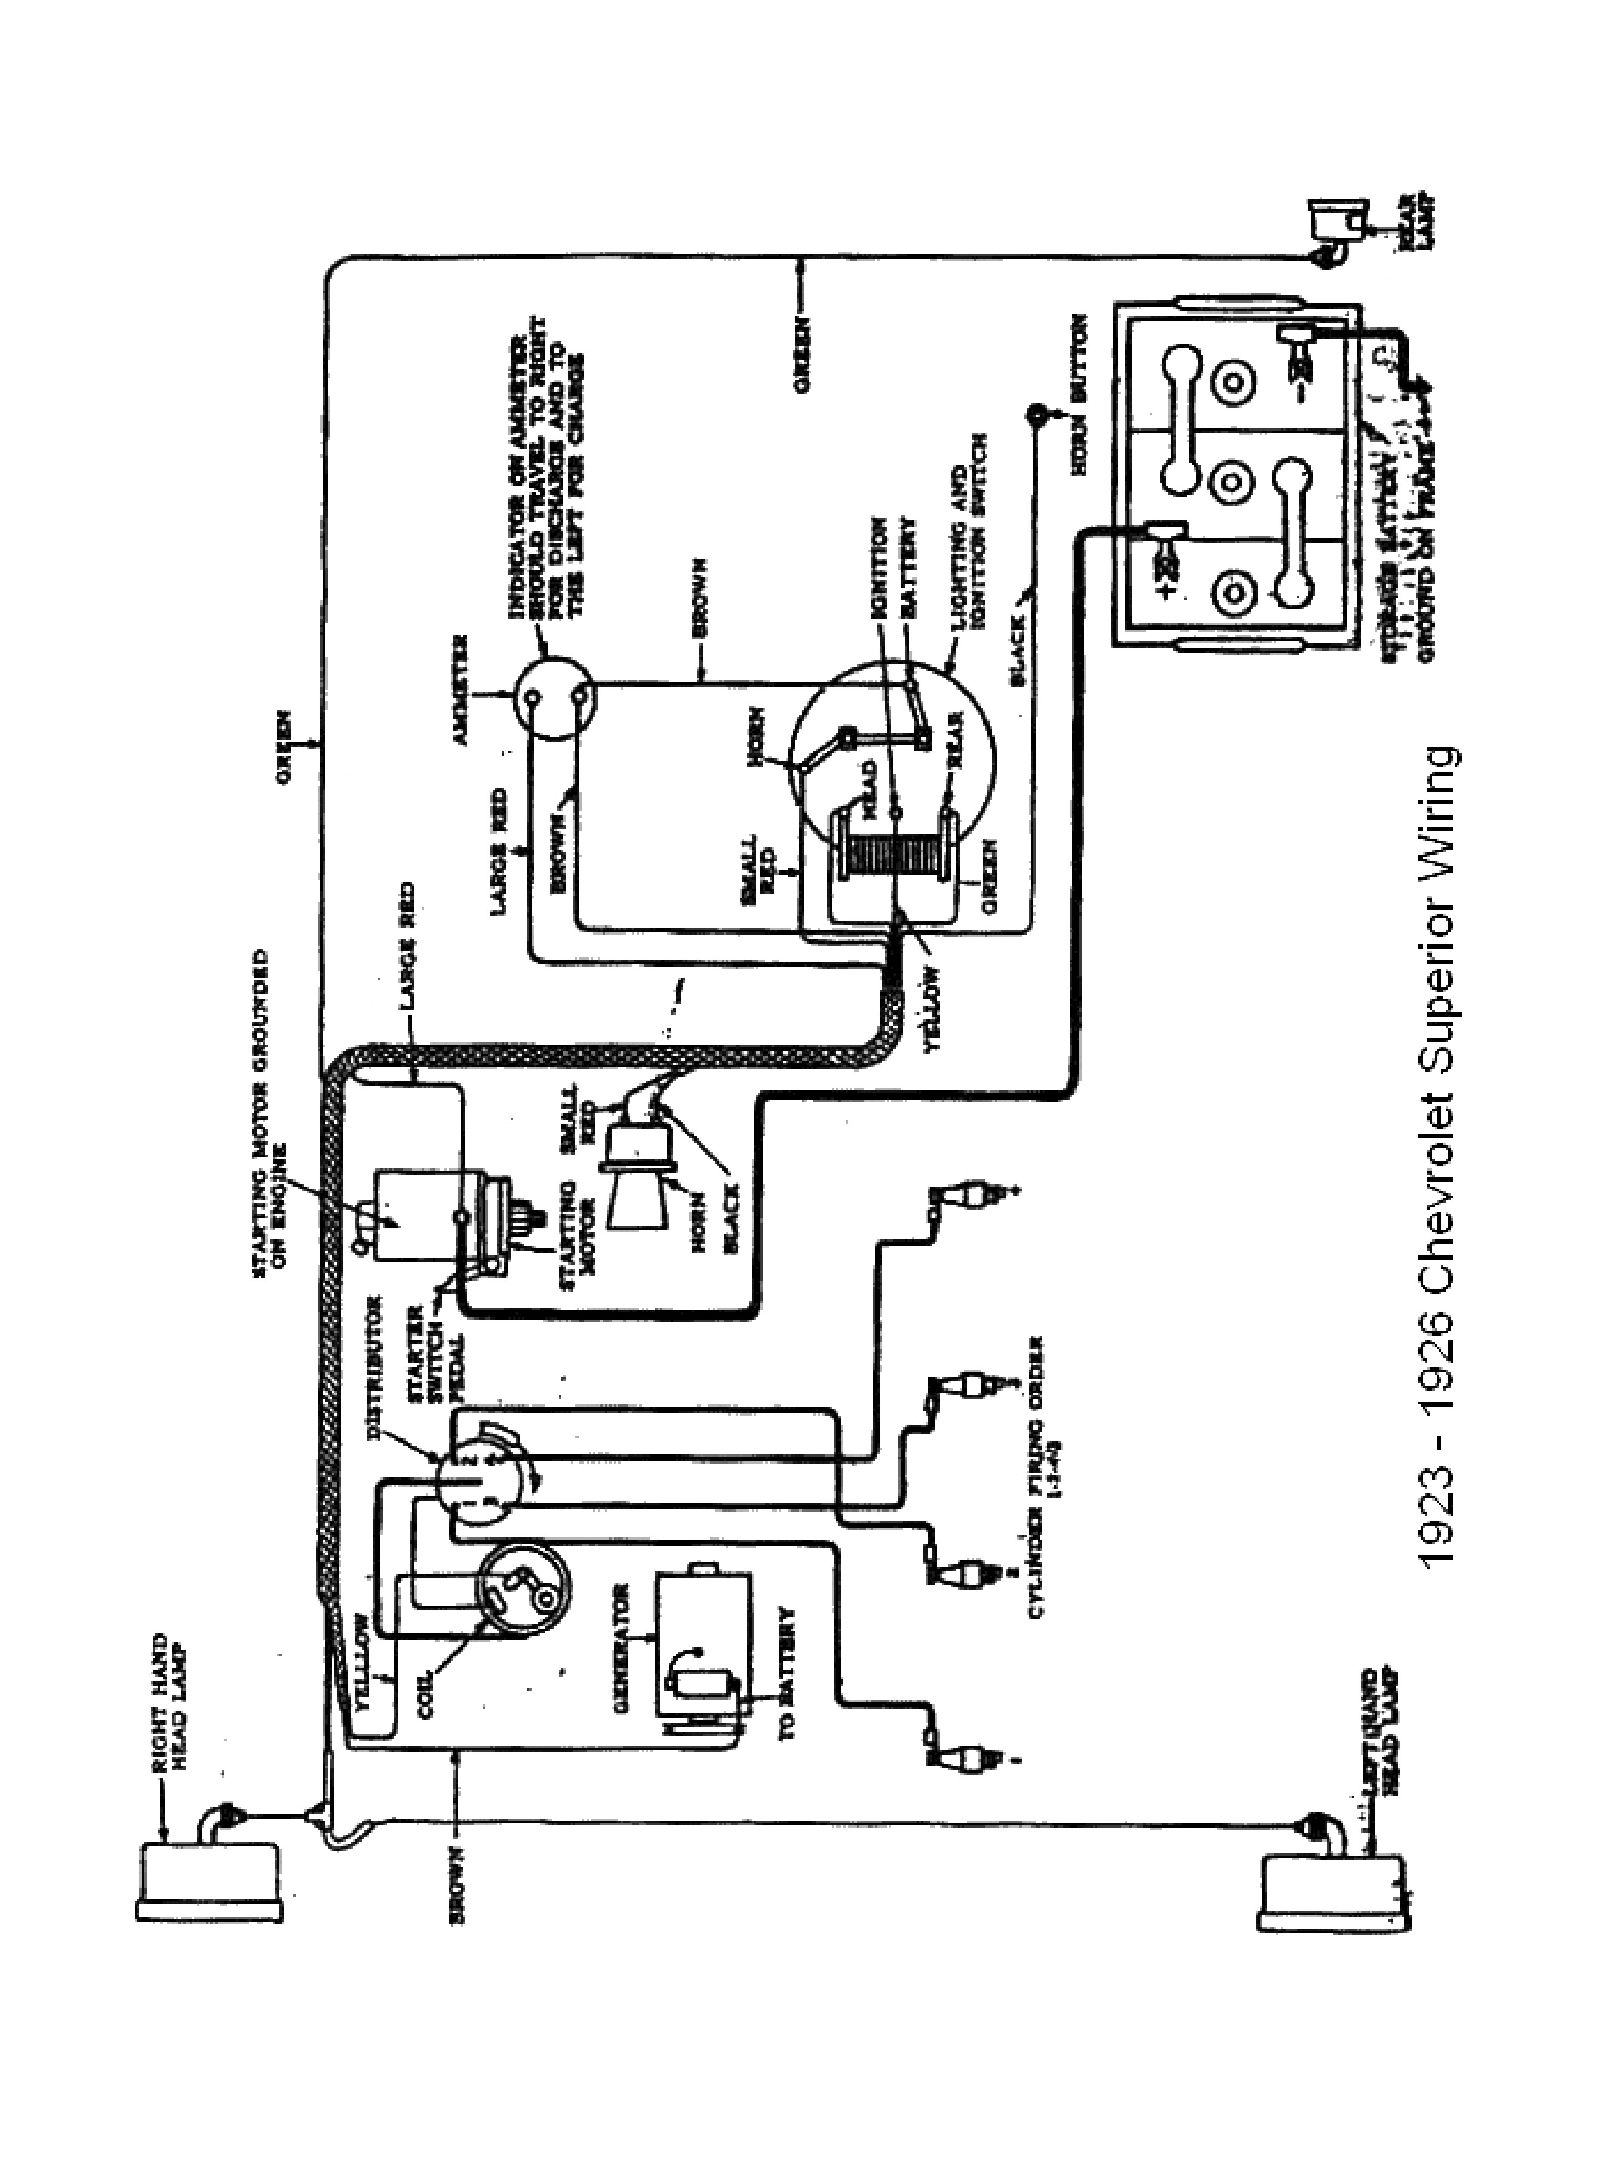 chevy wiring diagrams 4.3 Chevy Water Pump 1923 superior model 1923 superior model